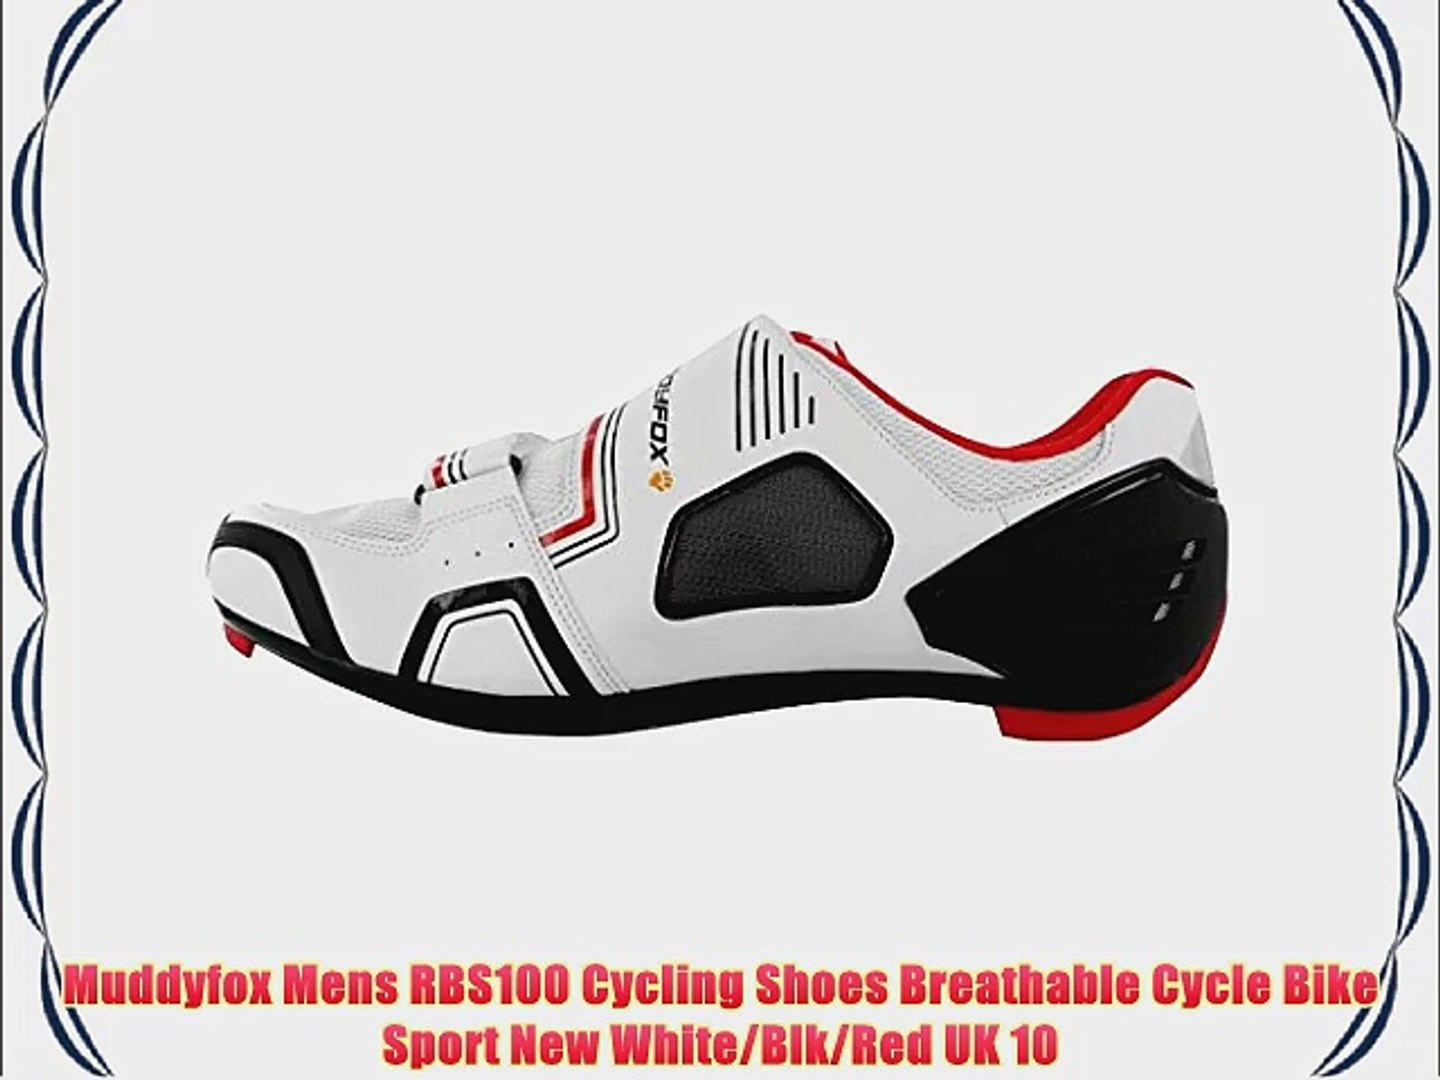 Muddyfox Mens RBS100 Cycling Shoes Breathable Cycle Bike Sport New White/Blk/Red UK 10